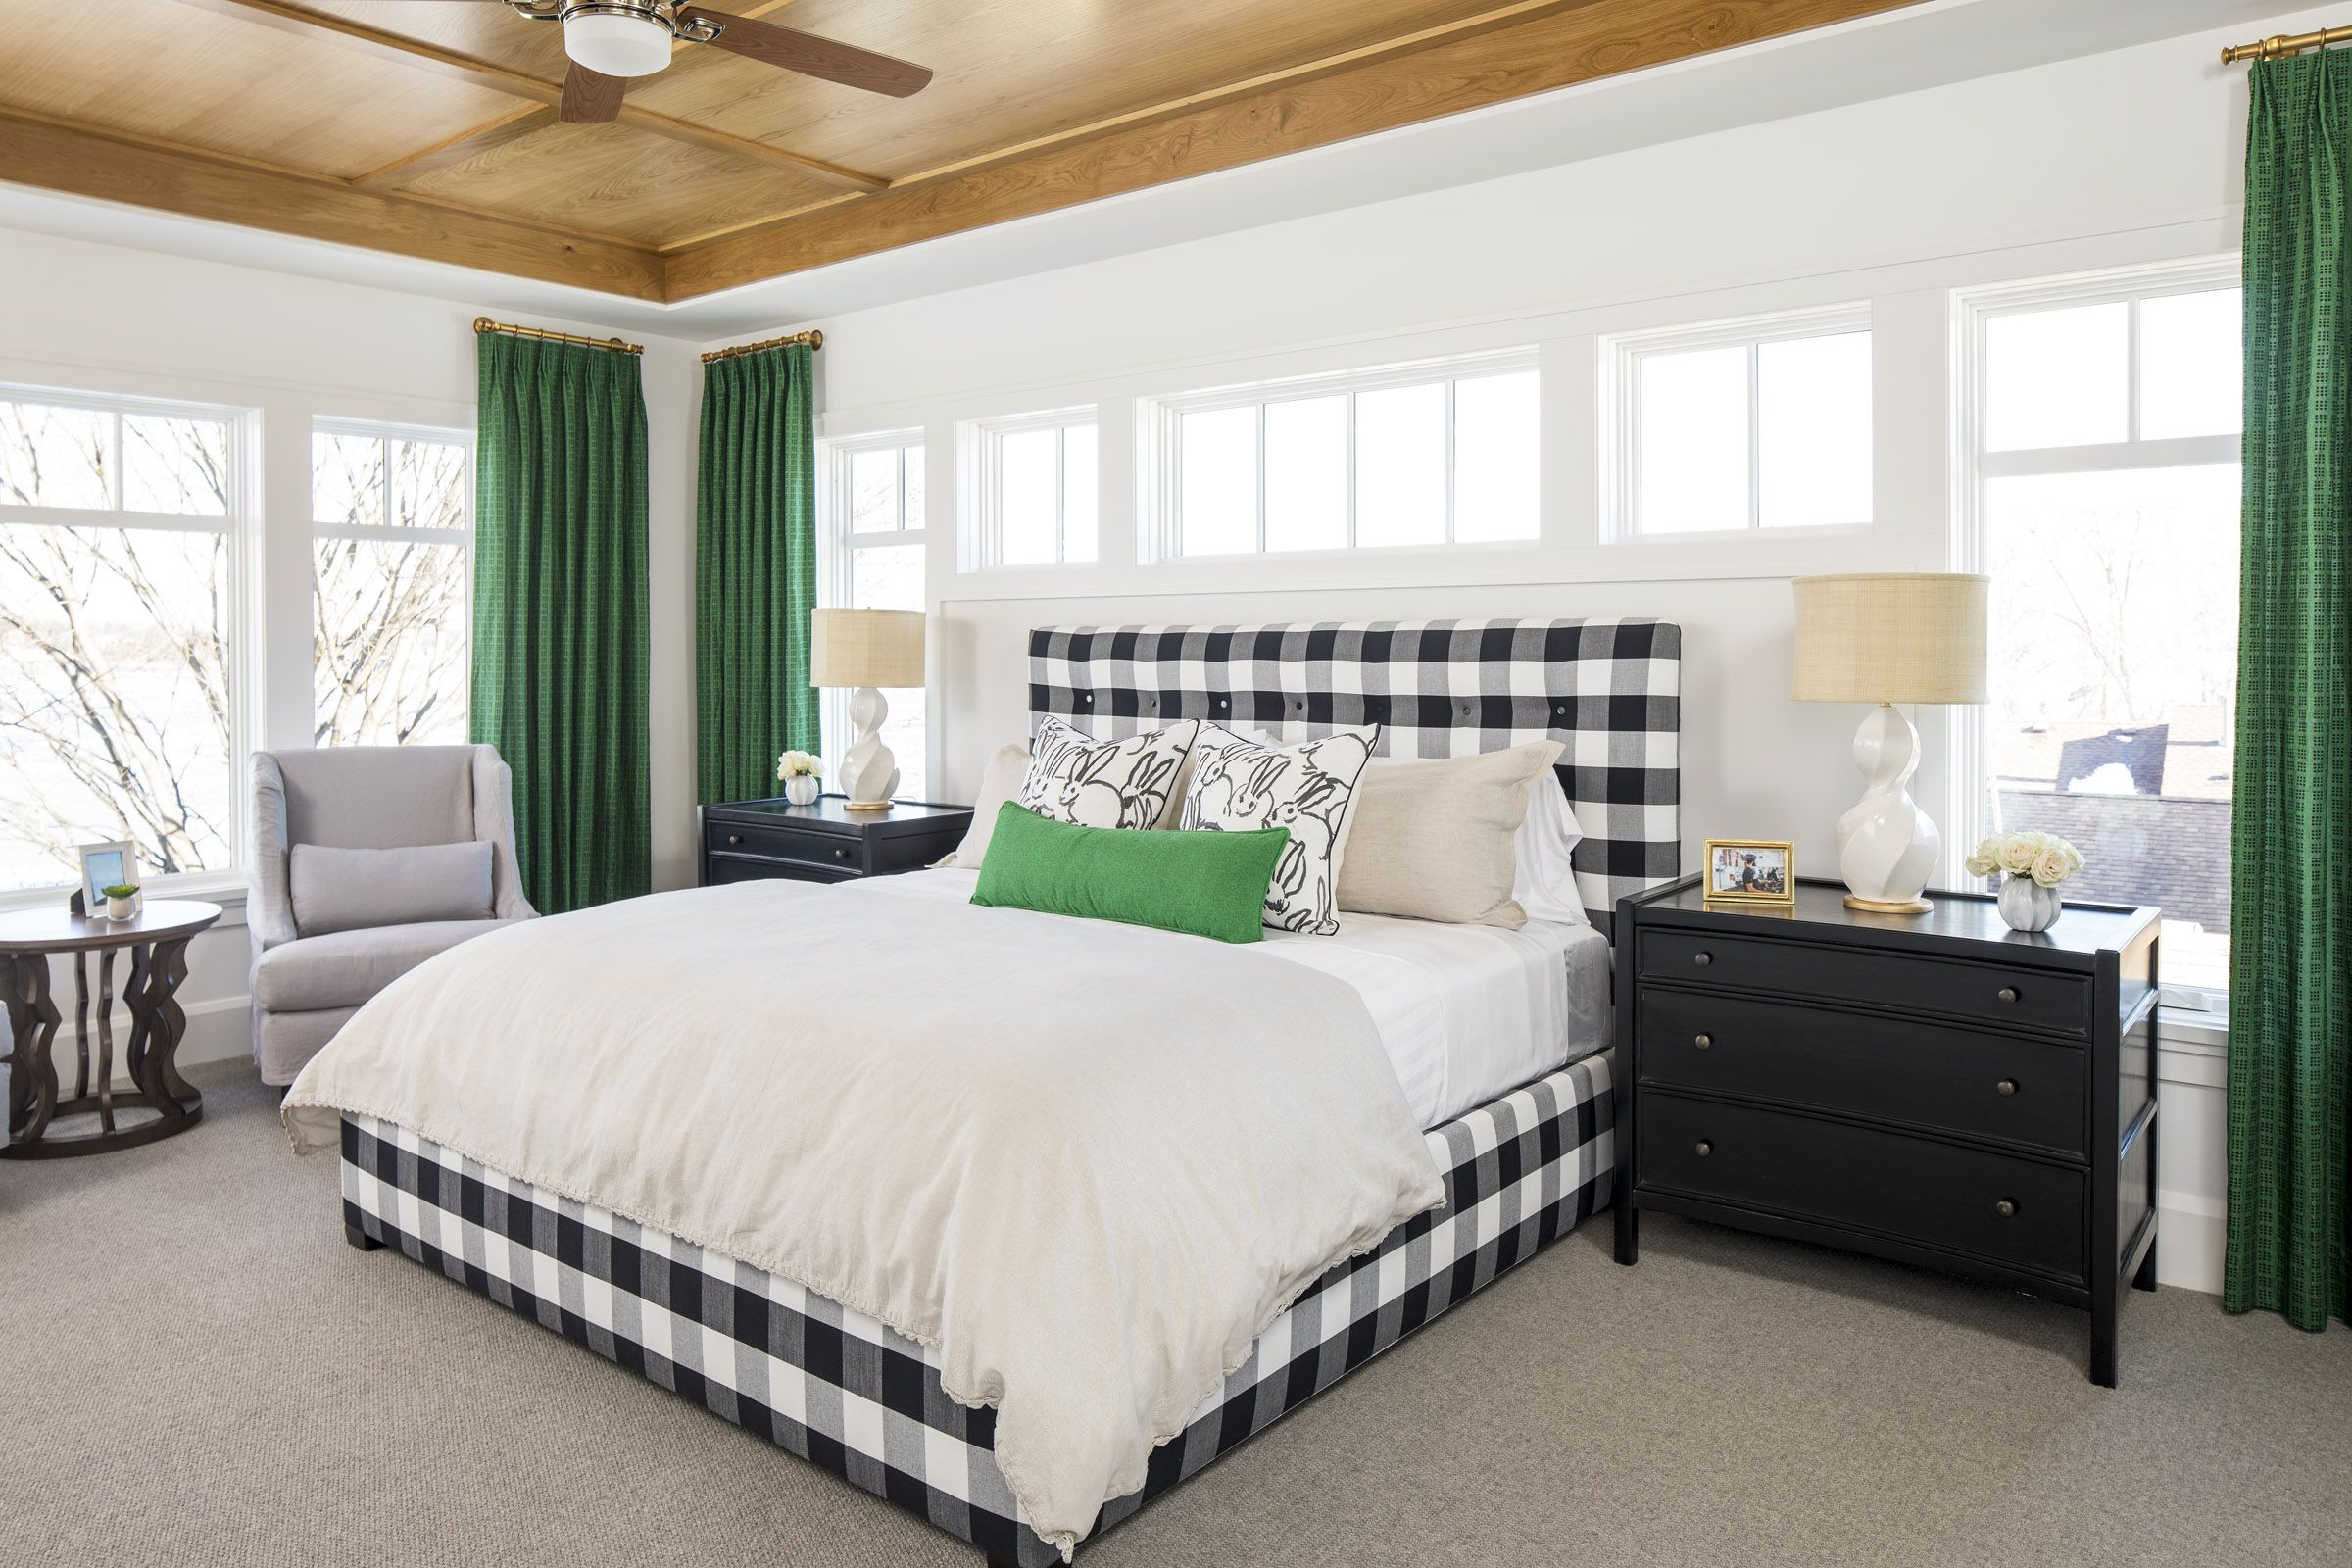 Window bedroom design  pin by city homes on  spring parade home  pinterest  bedrooms